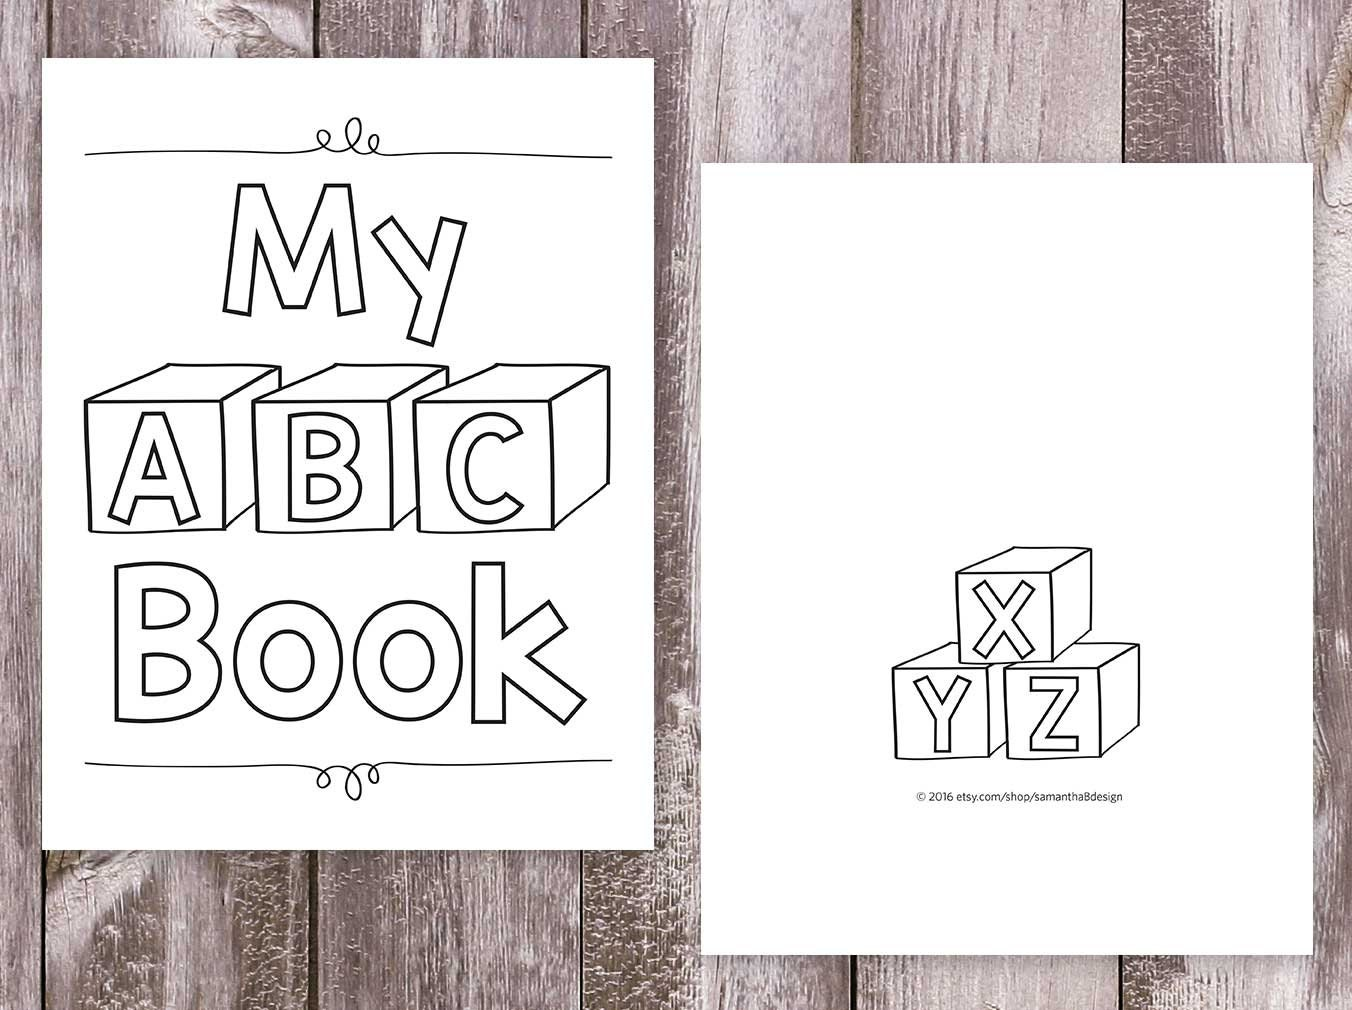 Alphabet Coloring Pages Printable 8.5x11